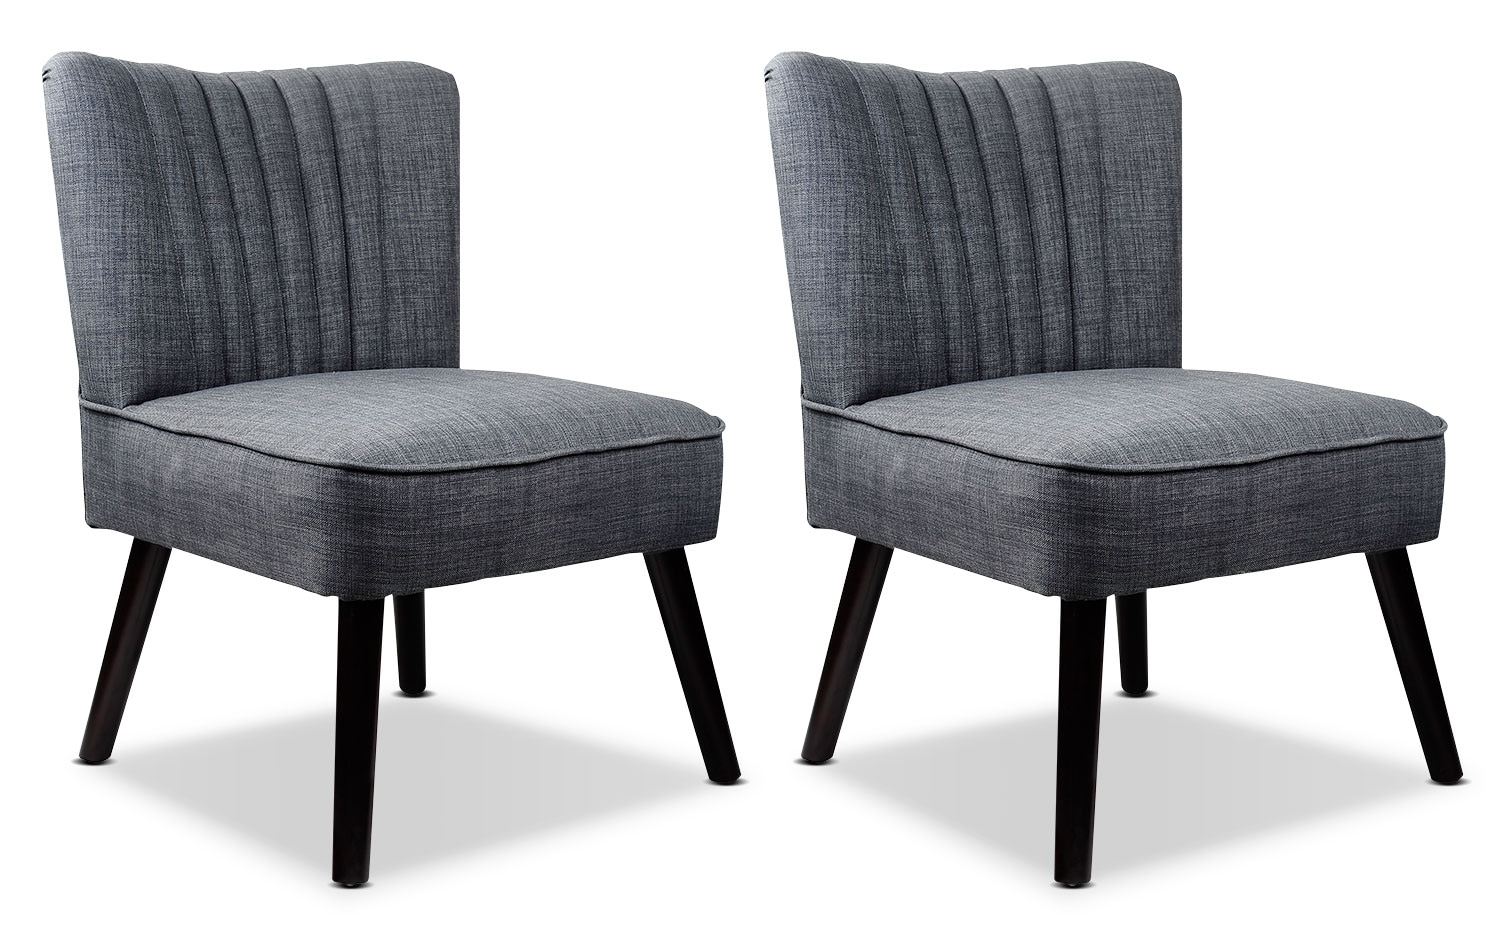 LAD Linen-Look Fabric Accent Chairs, Set of 2 – Grey